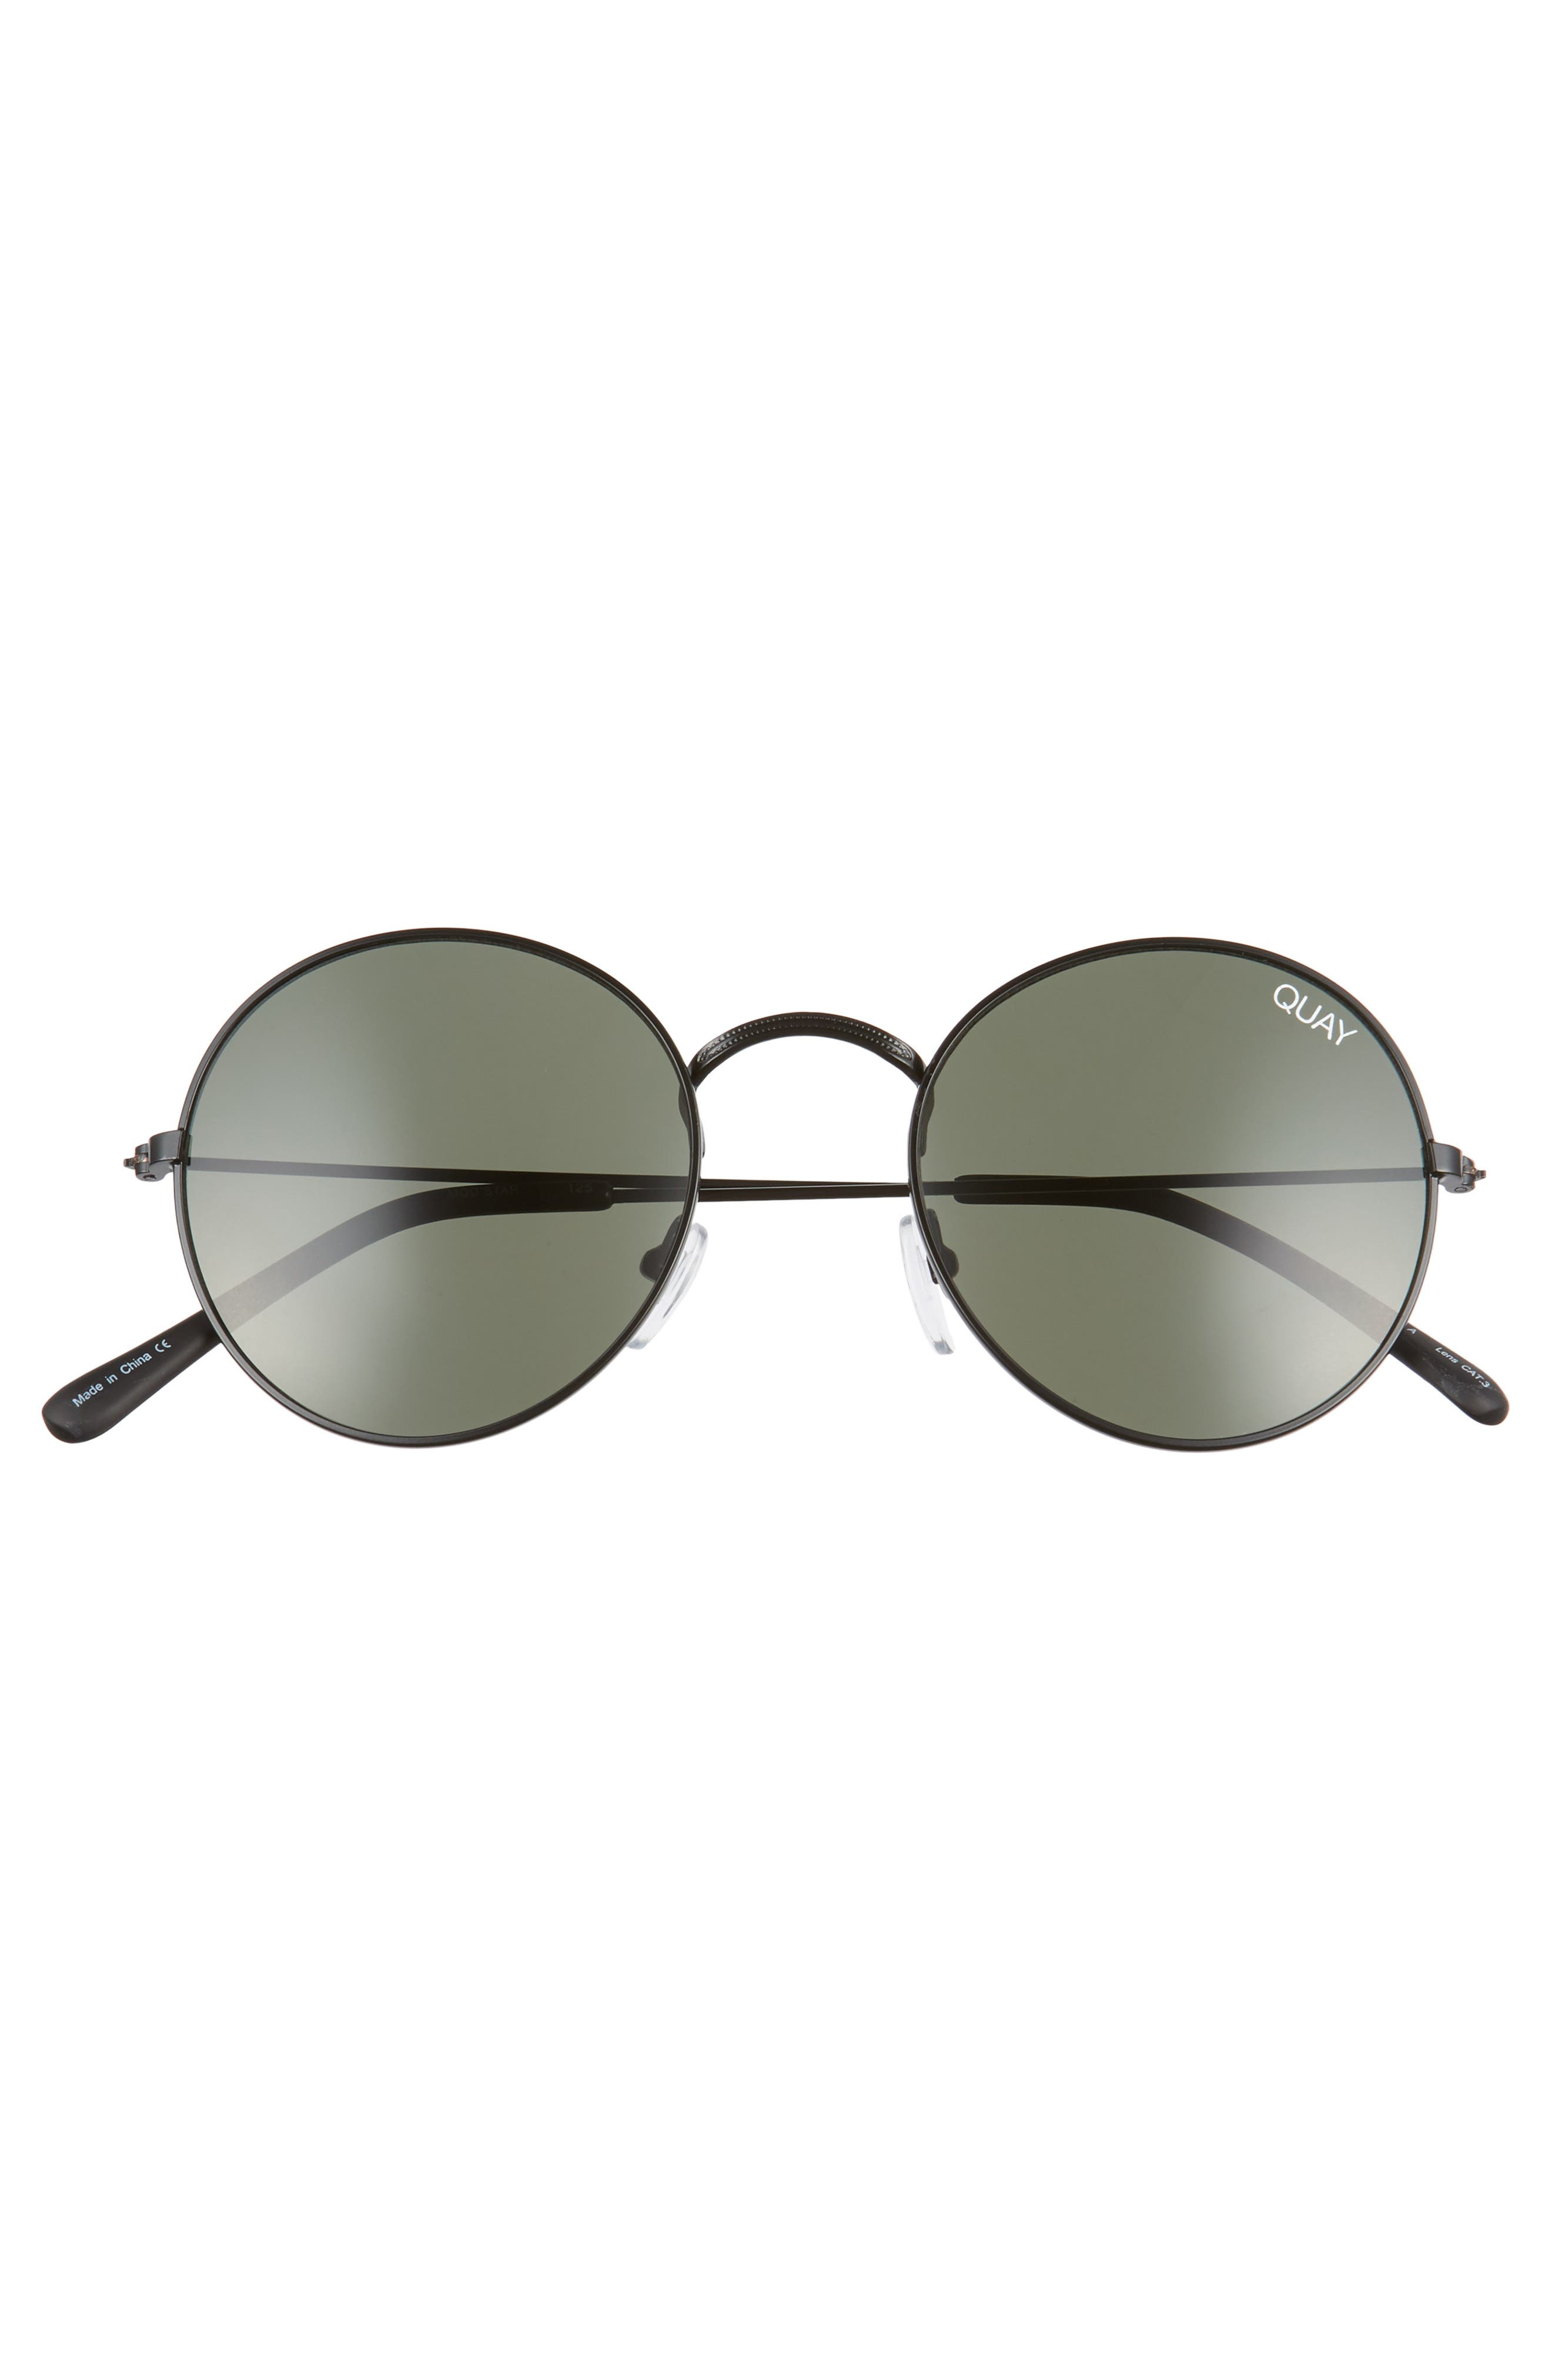 50mm Mod Star Round Sunglasses,                             Alternate thumbnail 3, color,                             014